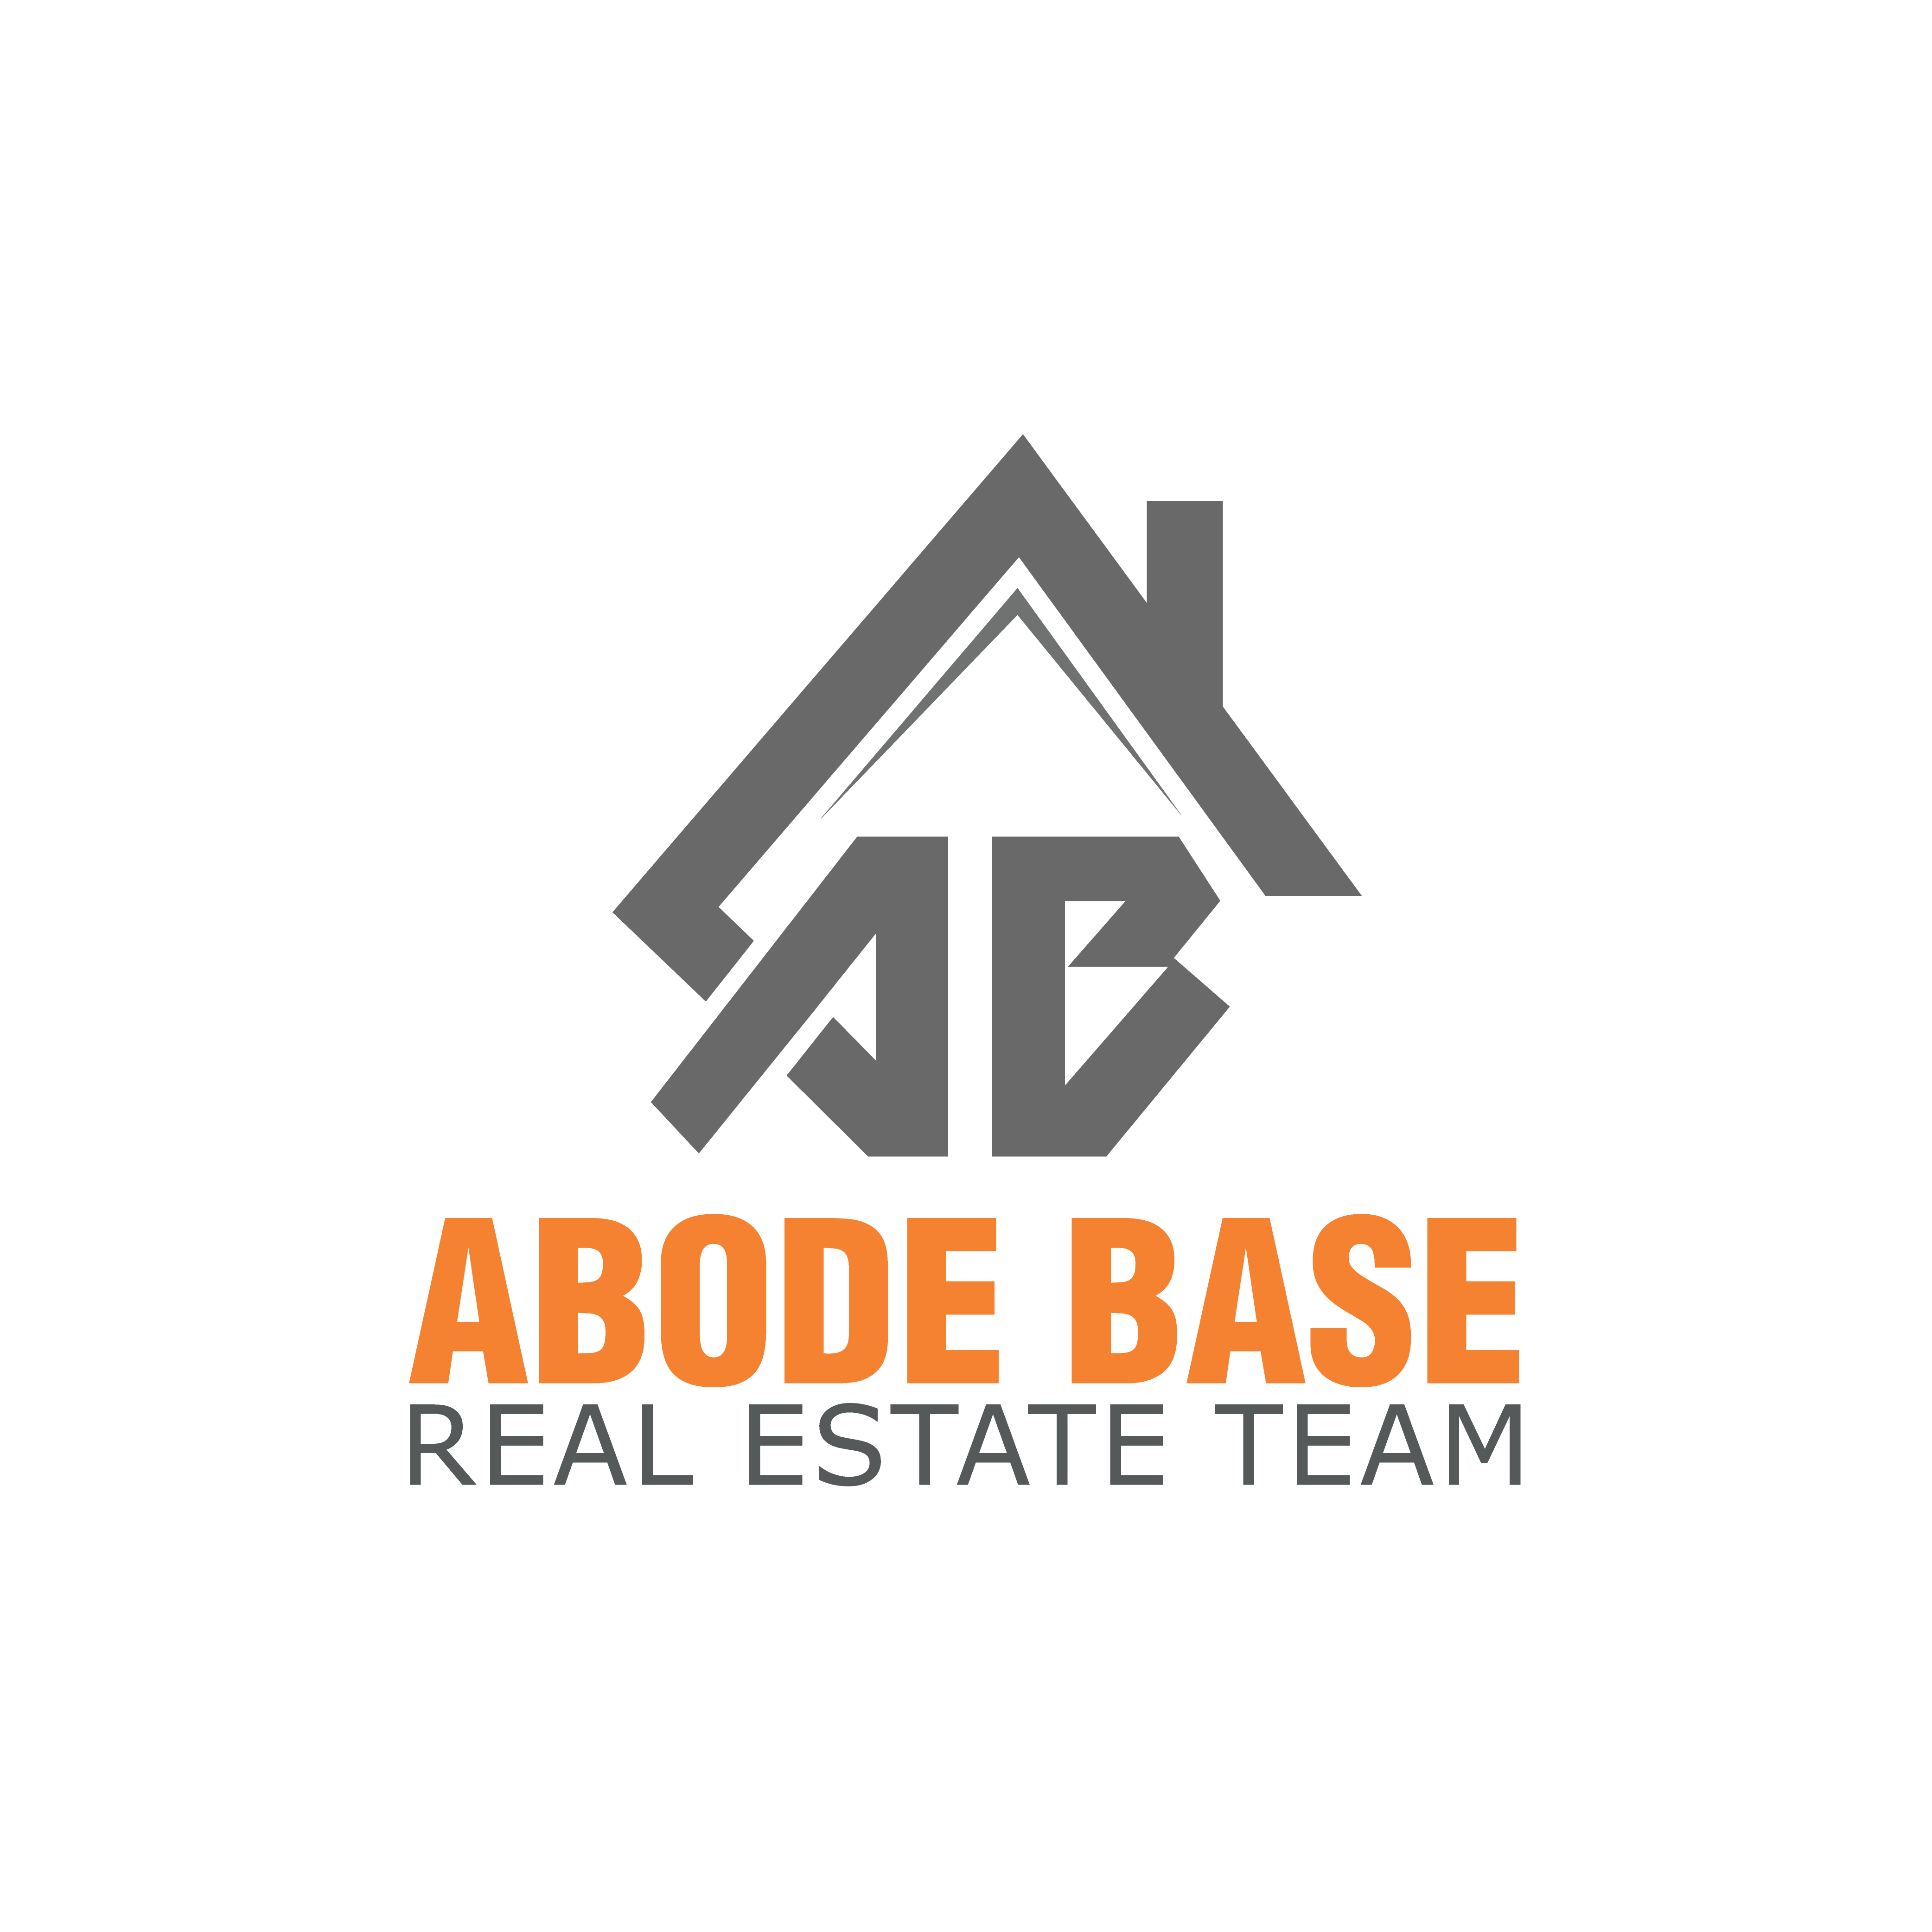 Create new logo for growing Real Estate Team